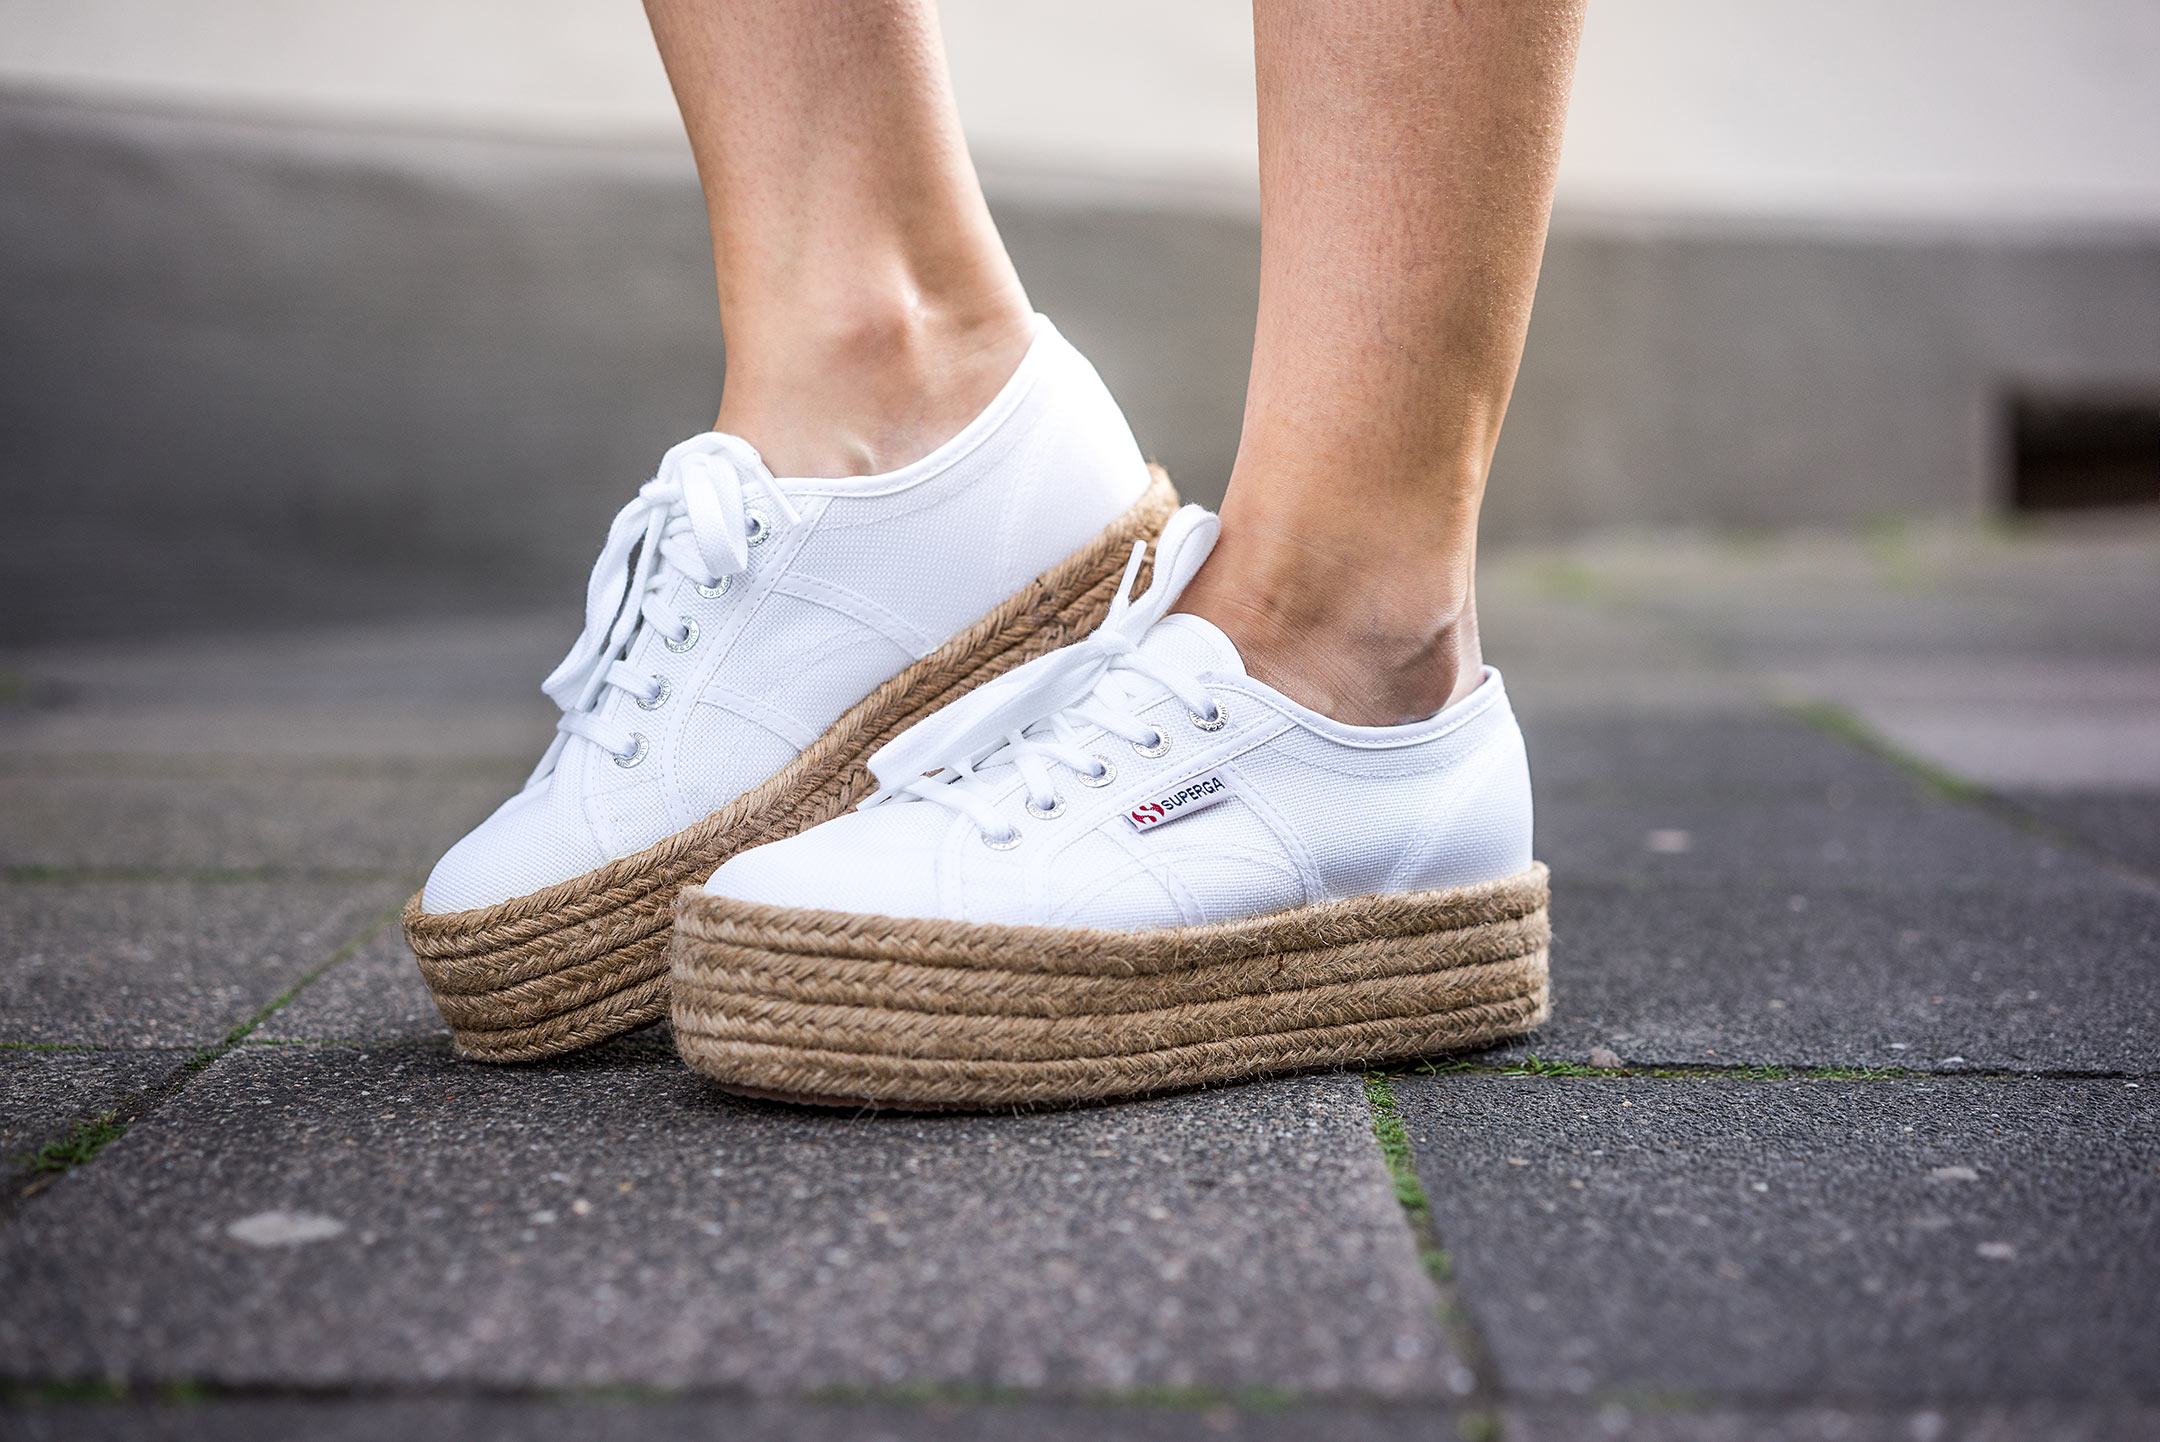 Superga Sneakerdrilles Weiss Plateau Schuhe Sommertrend Sunnyinga